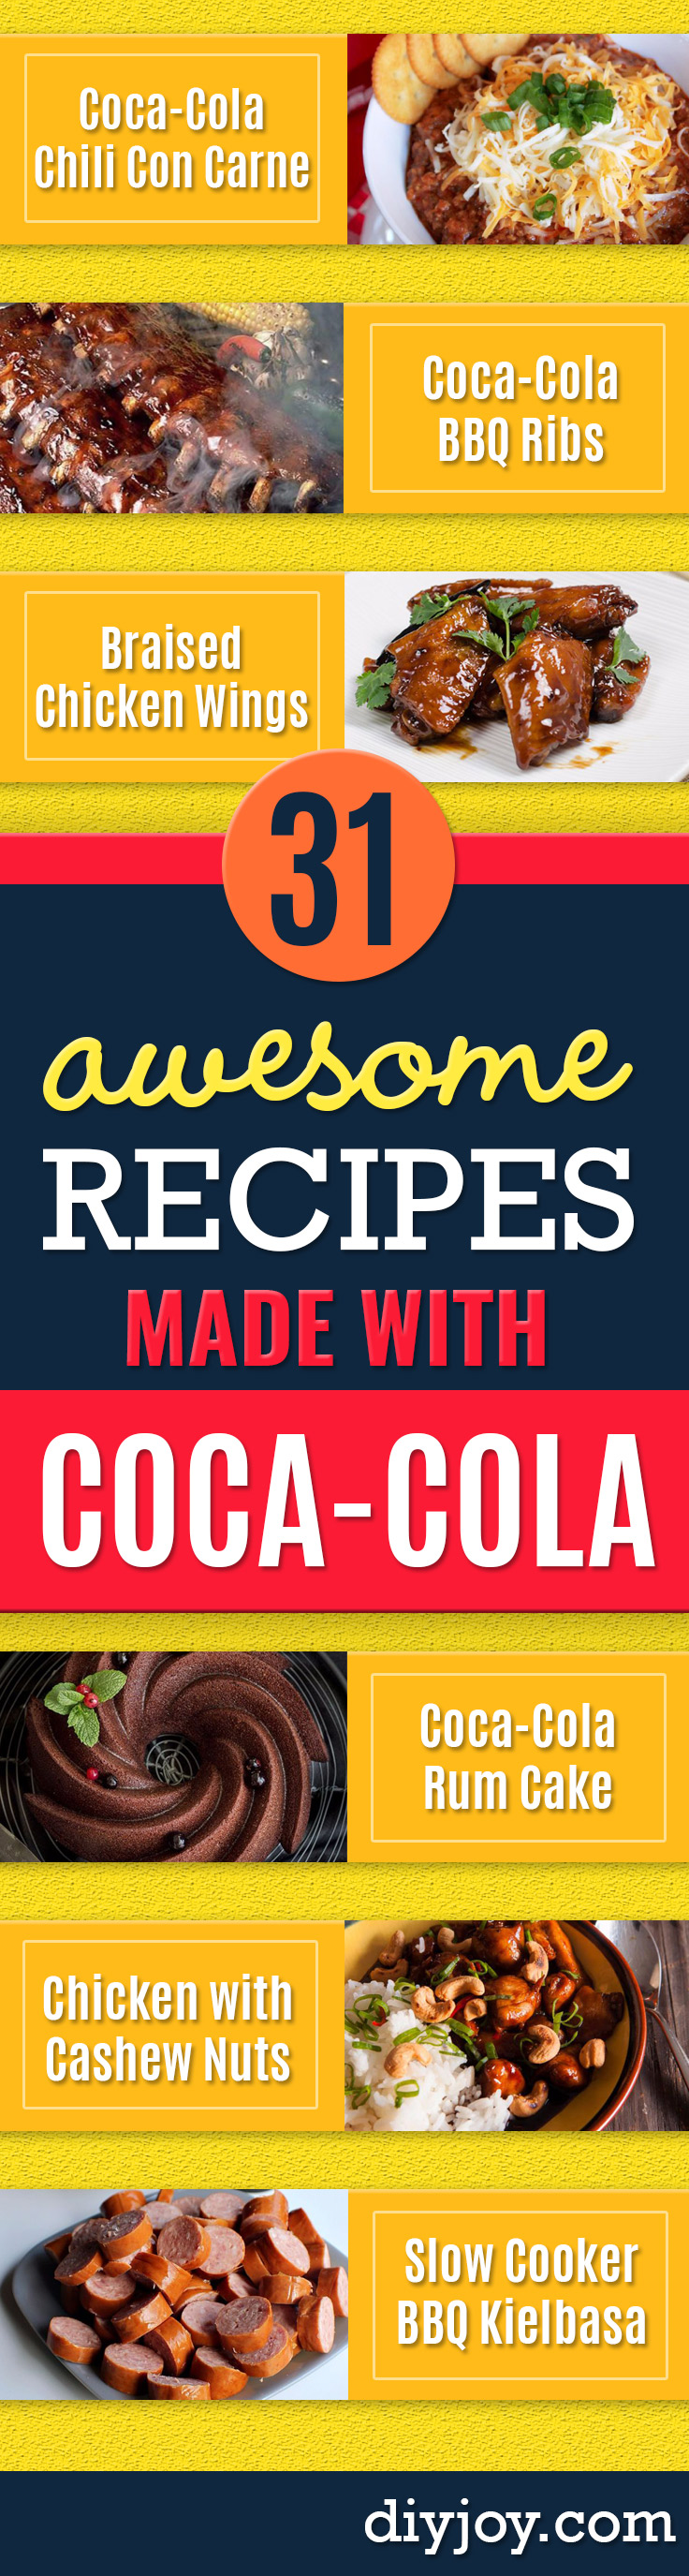 Best Coca Cola Recipes - Make Awesome Coke Chicken, Coca Cola Cake, Meatballs, Sodas, Drinks, Sweets, Dinners, Meat, Slow Cooker and Recipe Ideas With Cake Mixes - Fun Food Projects For Families and Parties With Step By Step Tutorials Best Coca Cola Recipes - Make Awesome Coke Chicken, Coca Cola Cake, Meatballs, Sodas, Drinks, Sweets, Dinners, Meat, Slow Cooker and Recipe Ideas With Cake Mixes #cocacola #recipes #desserts